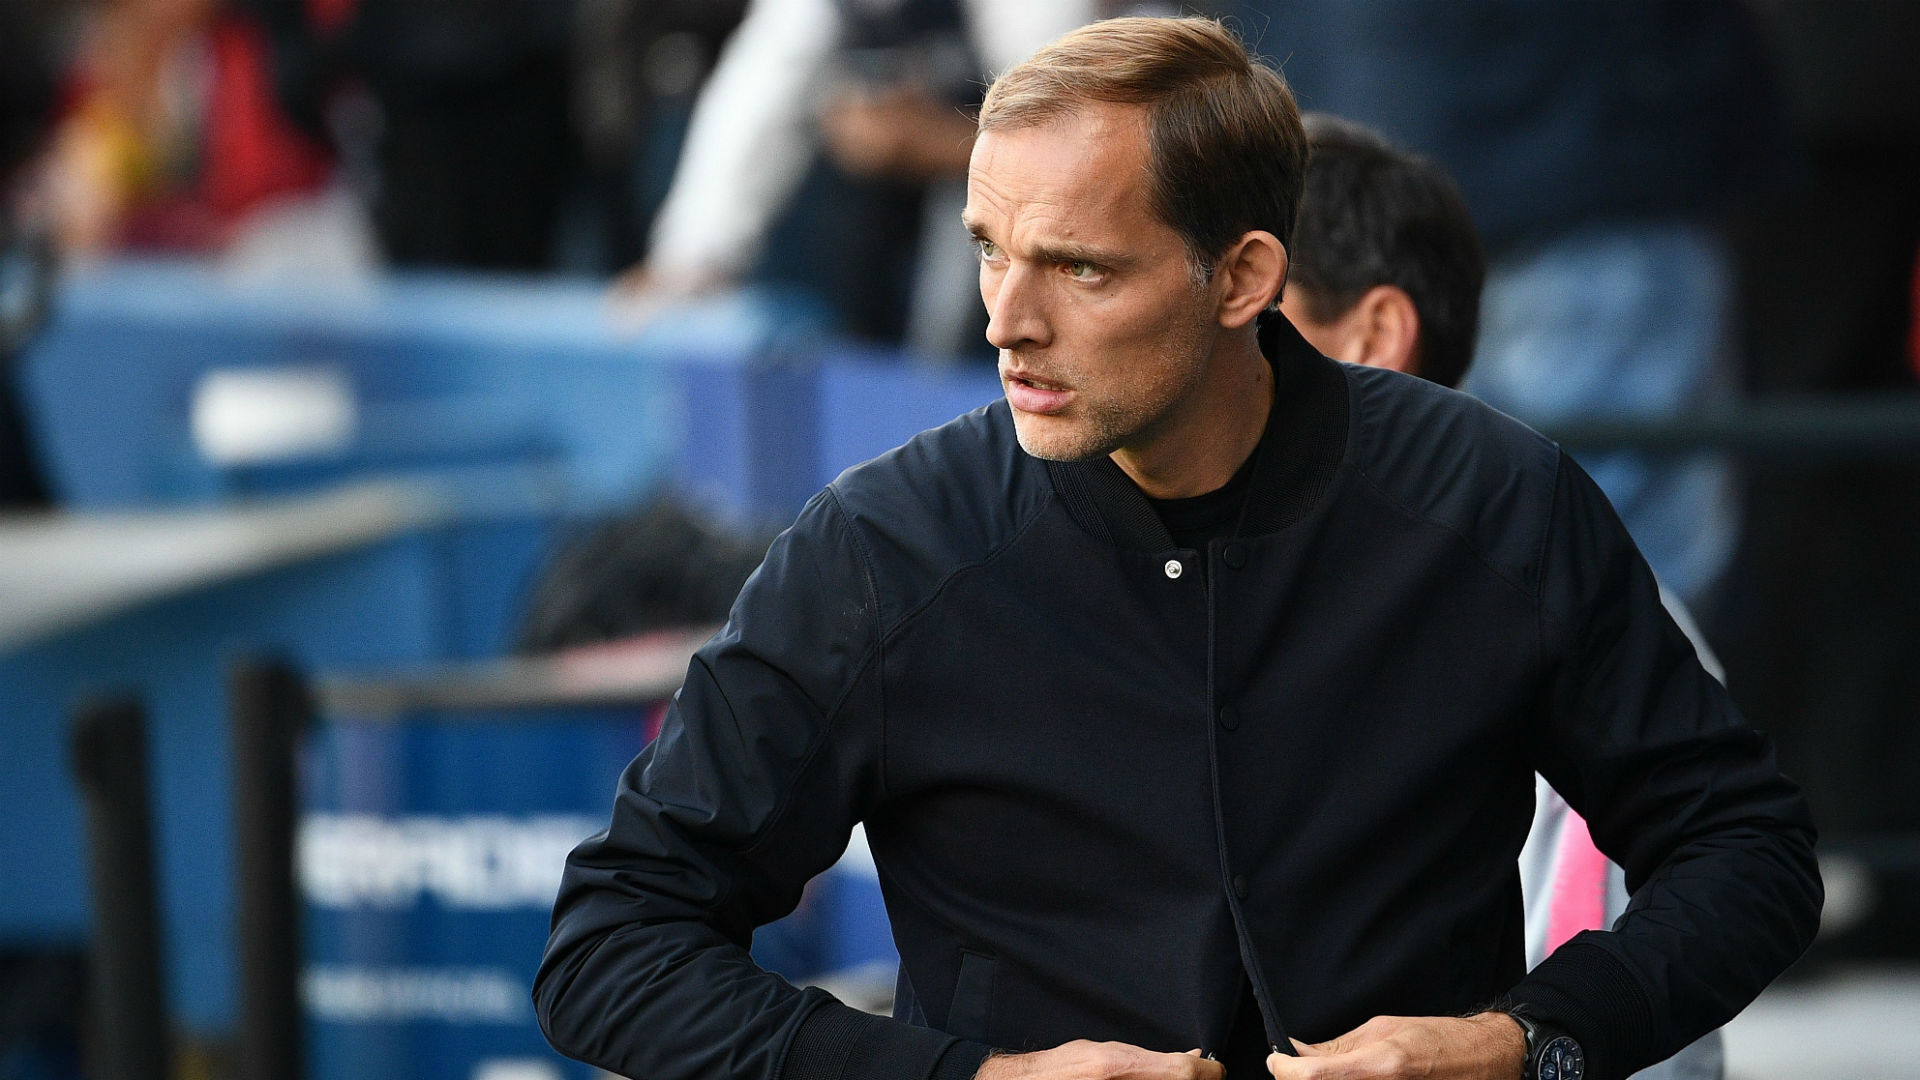 Thomas Tuchel PSG Amiens Ligue 1 20102018